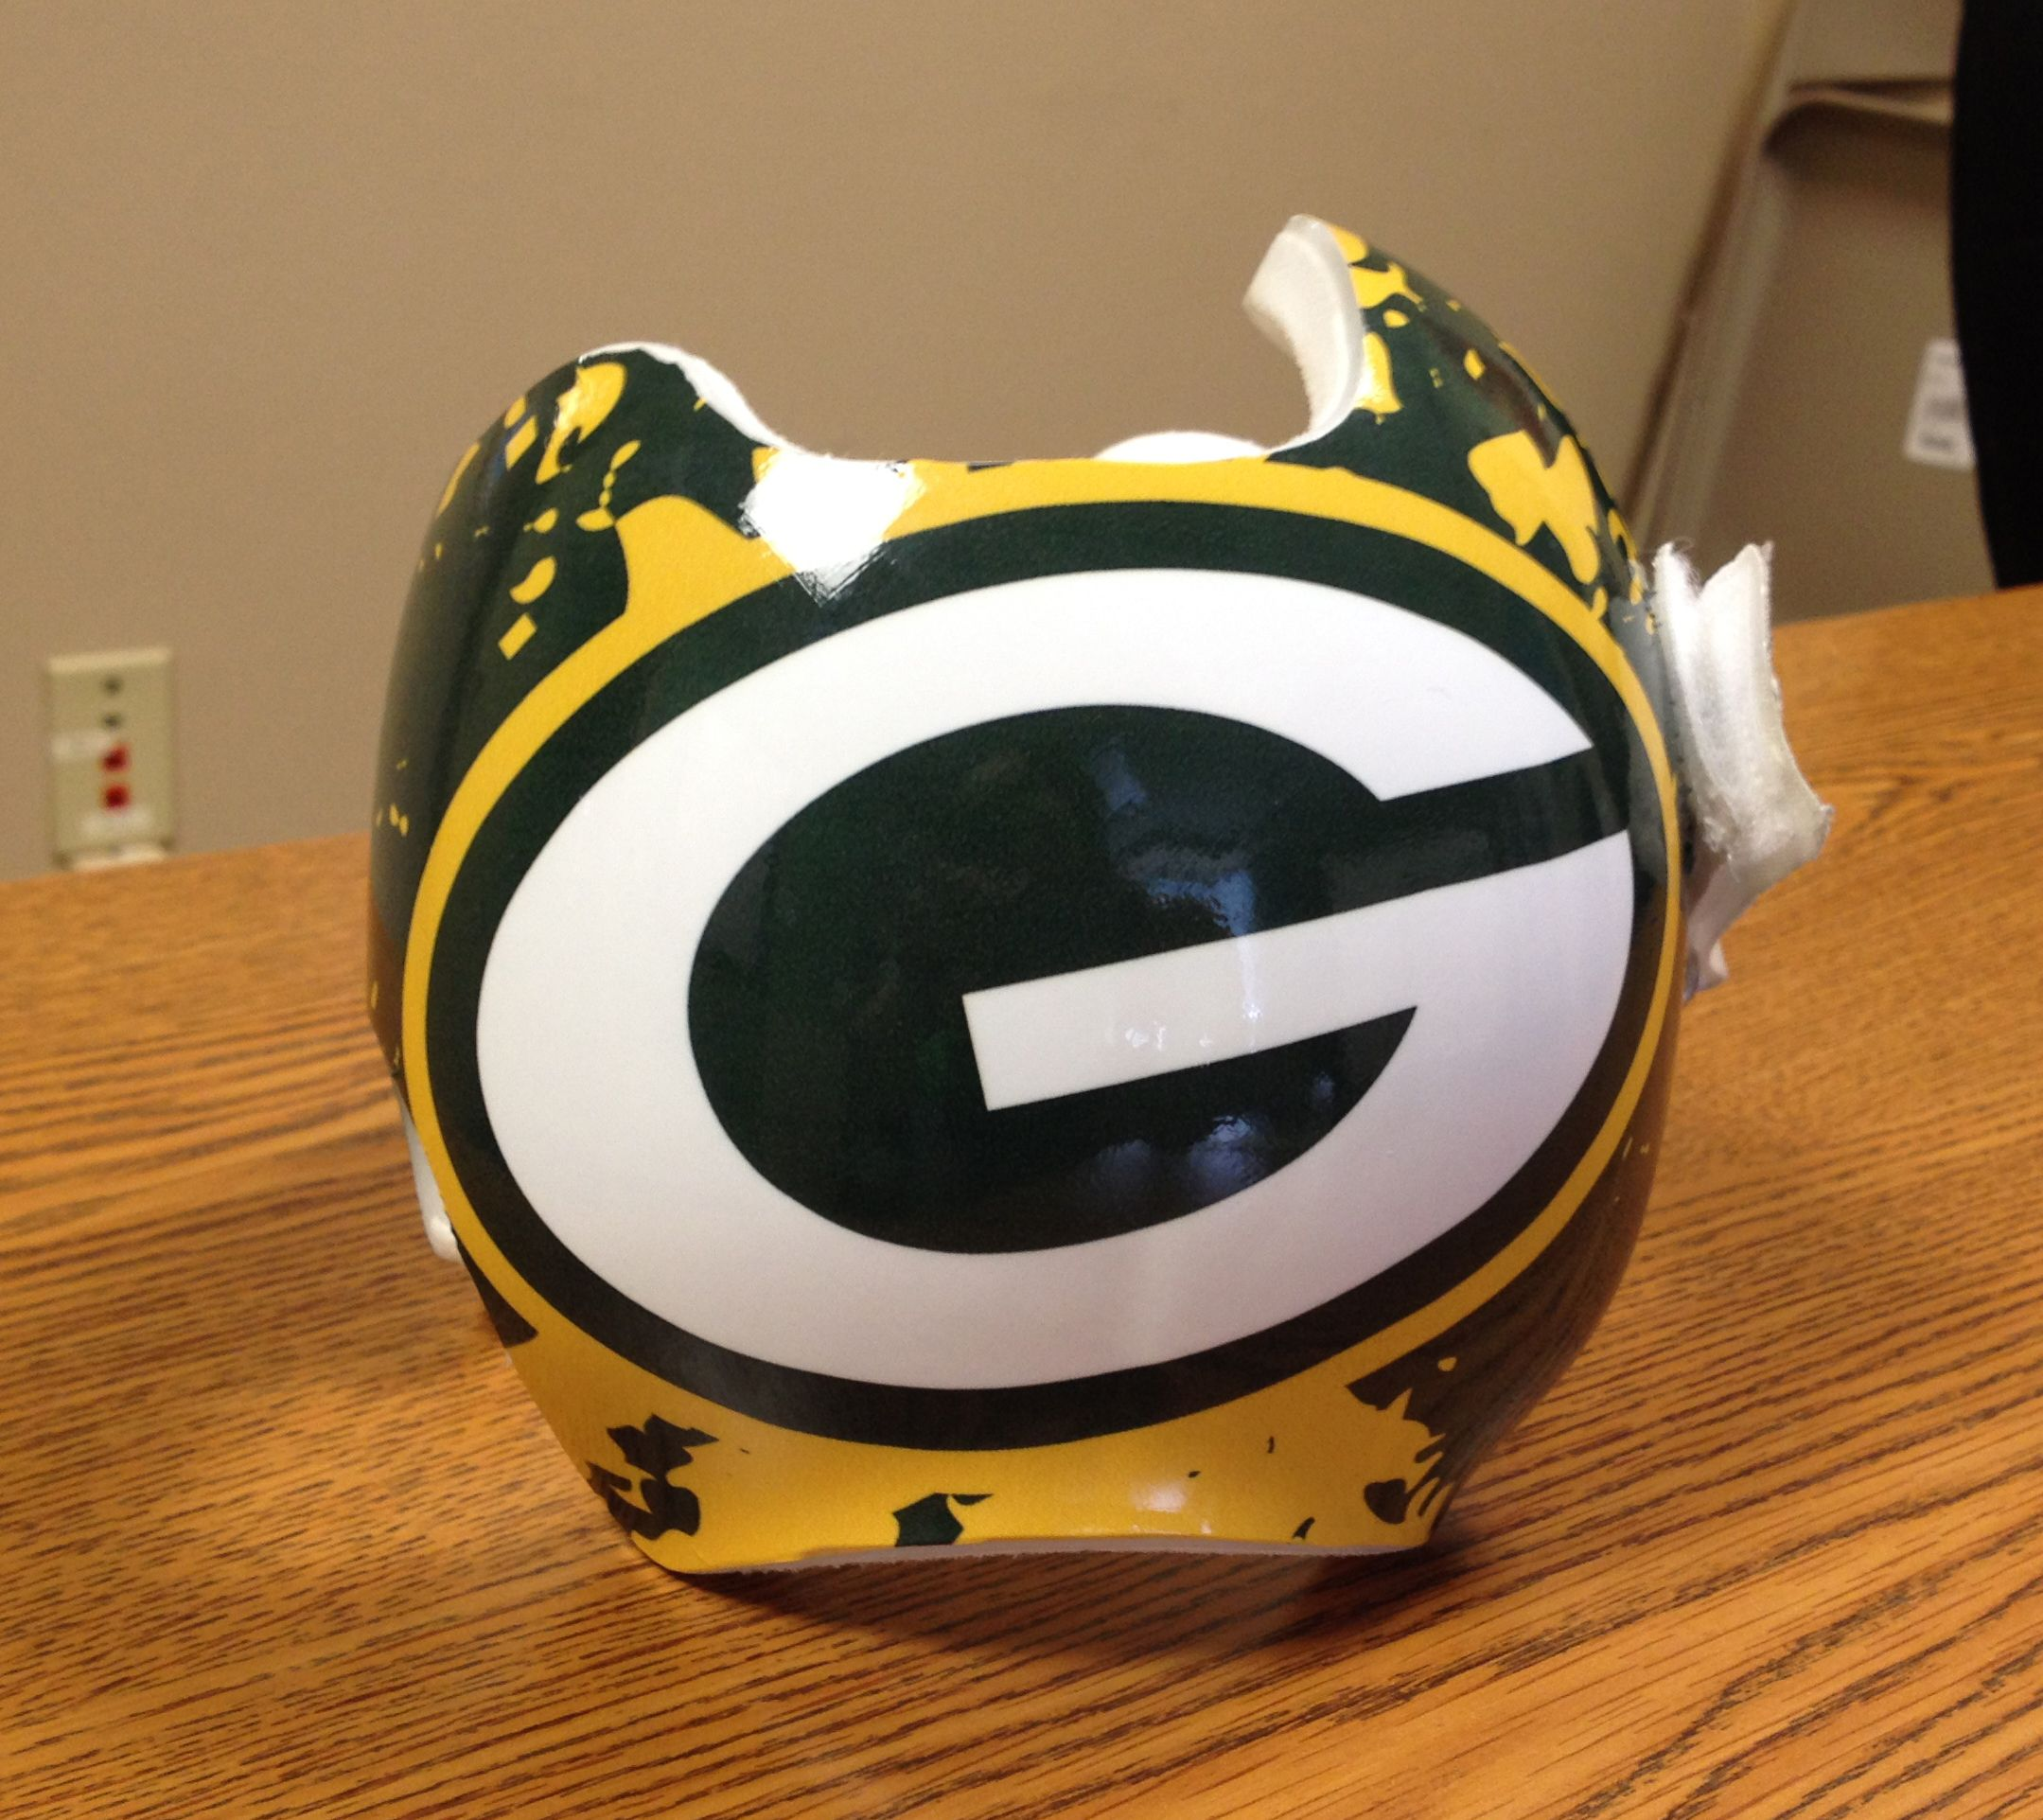 ed017732 www.kidwraps.org Sam's Green Bay Packers DOC band wrap done by ...